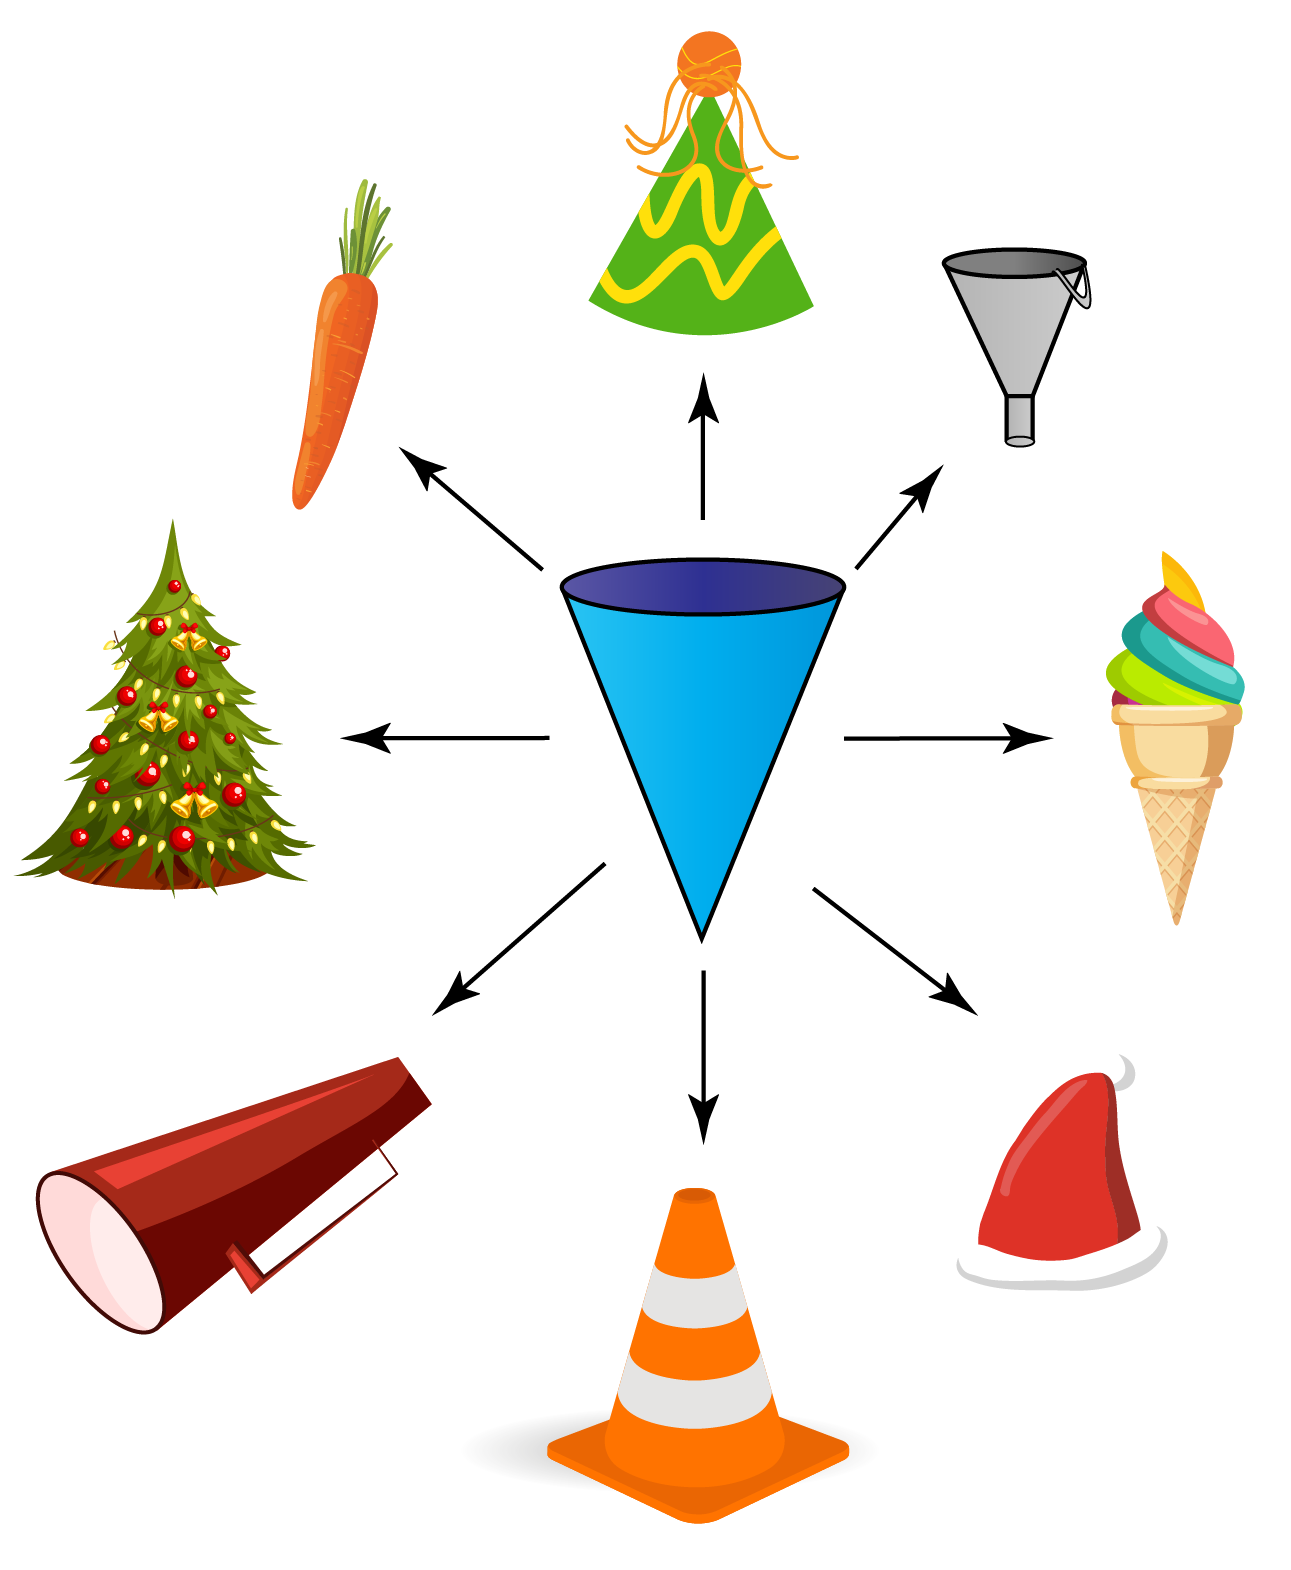 examples of cone-shaped objects